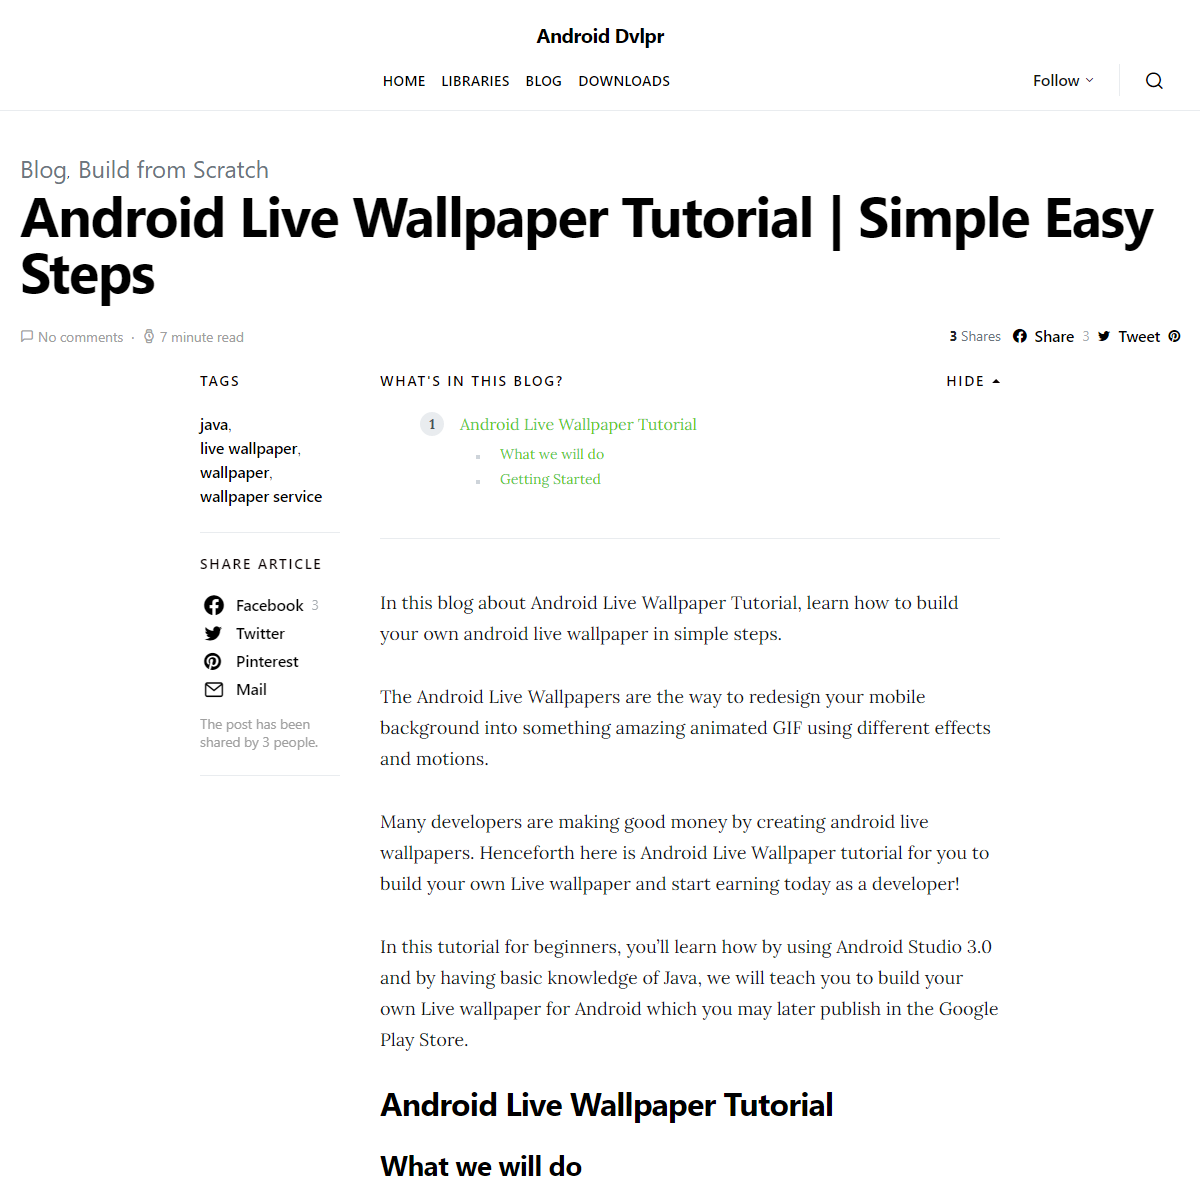 Android Live Wallpaper Tutorial - Simple Easy Steps - Android Dvlpr